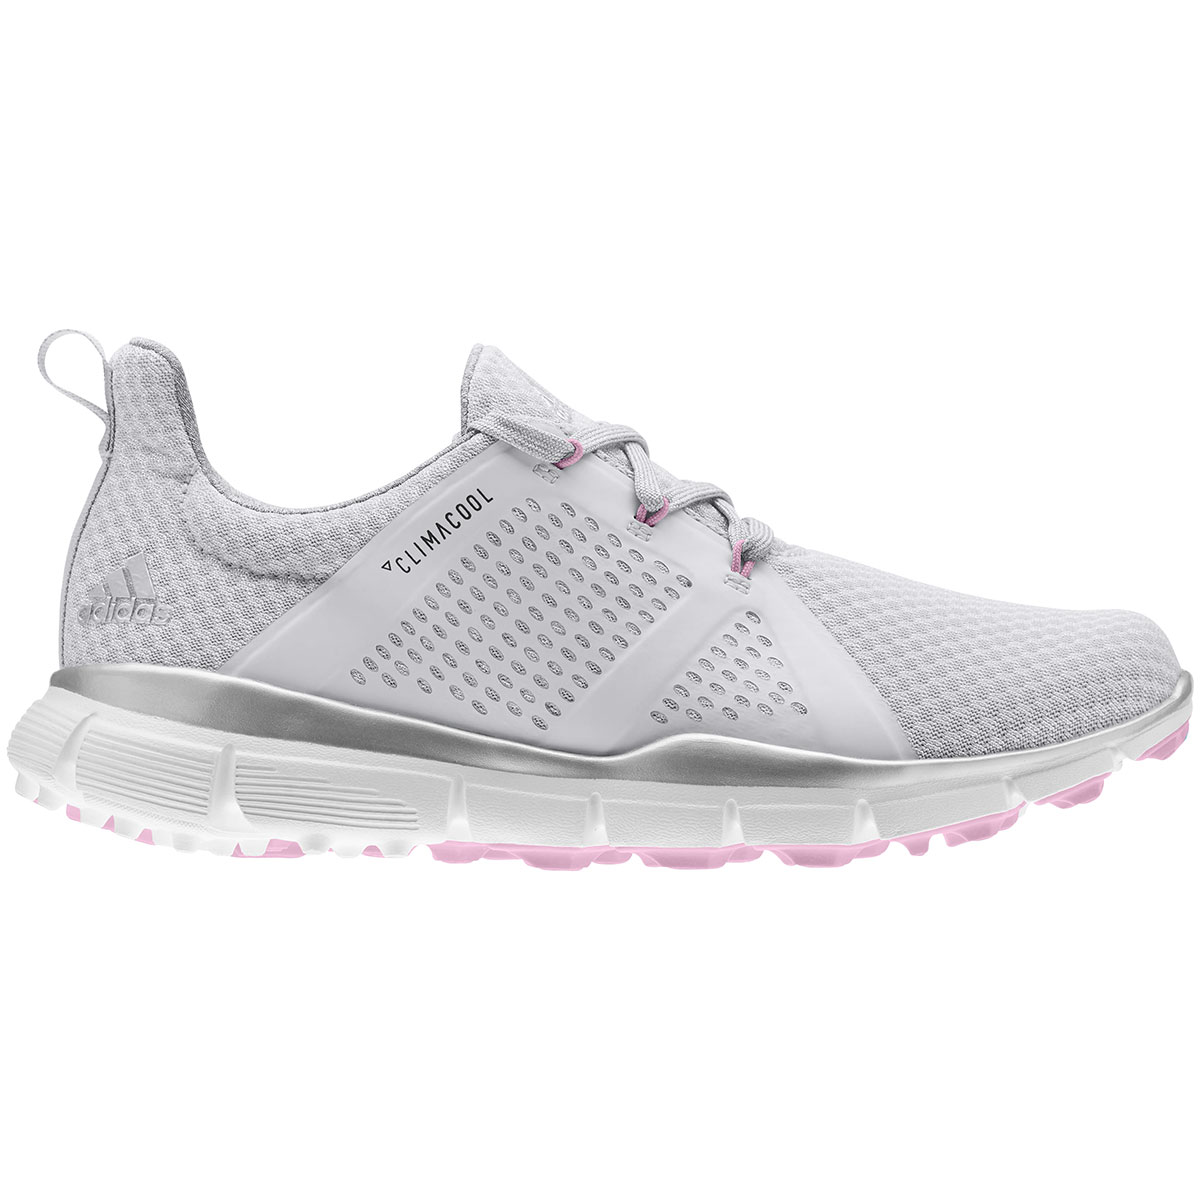 Adidas Women's Climacool Cage White/Grey Golf Shoe